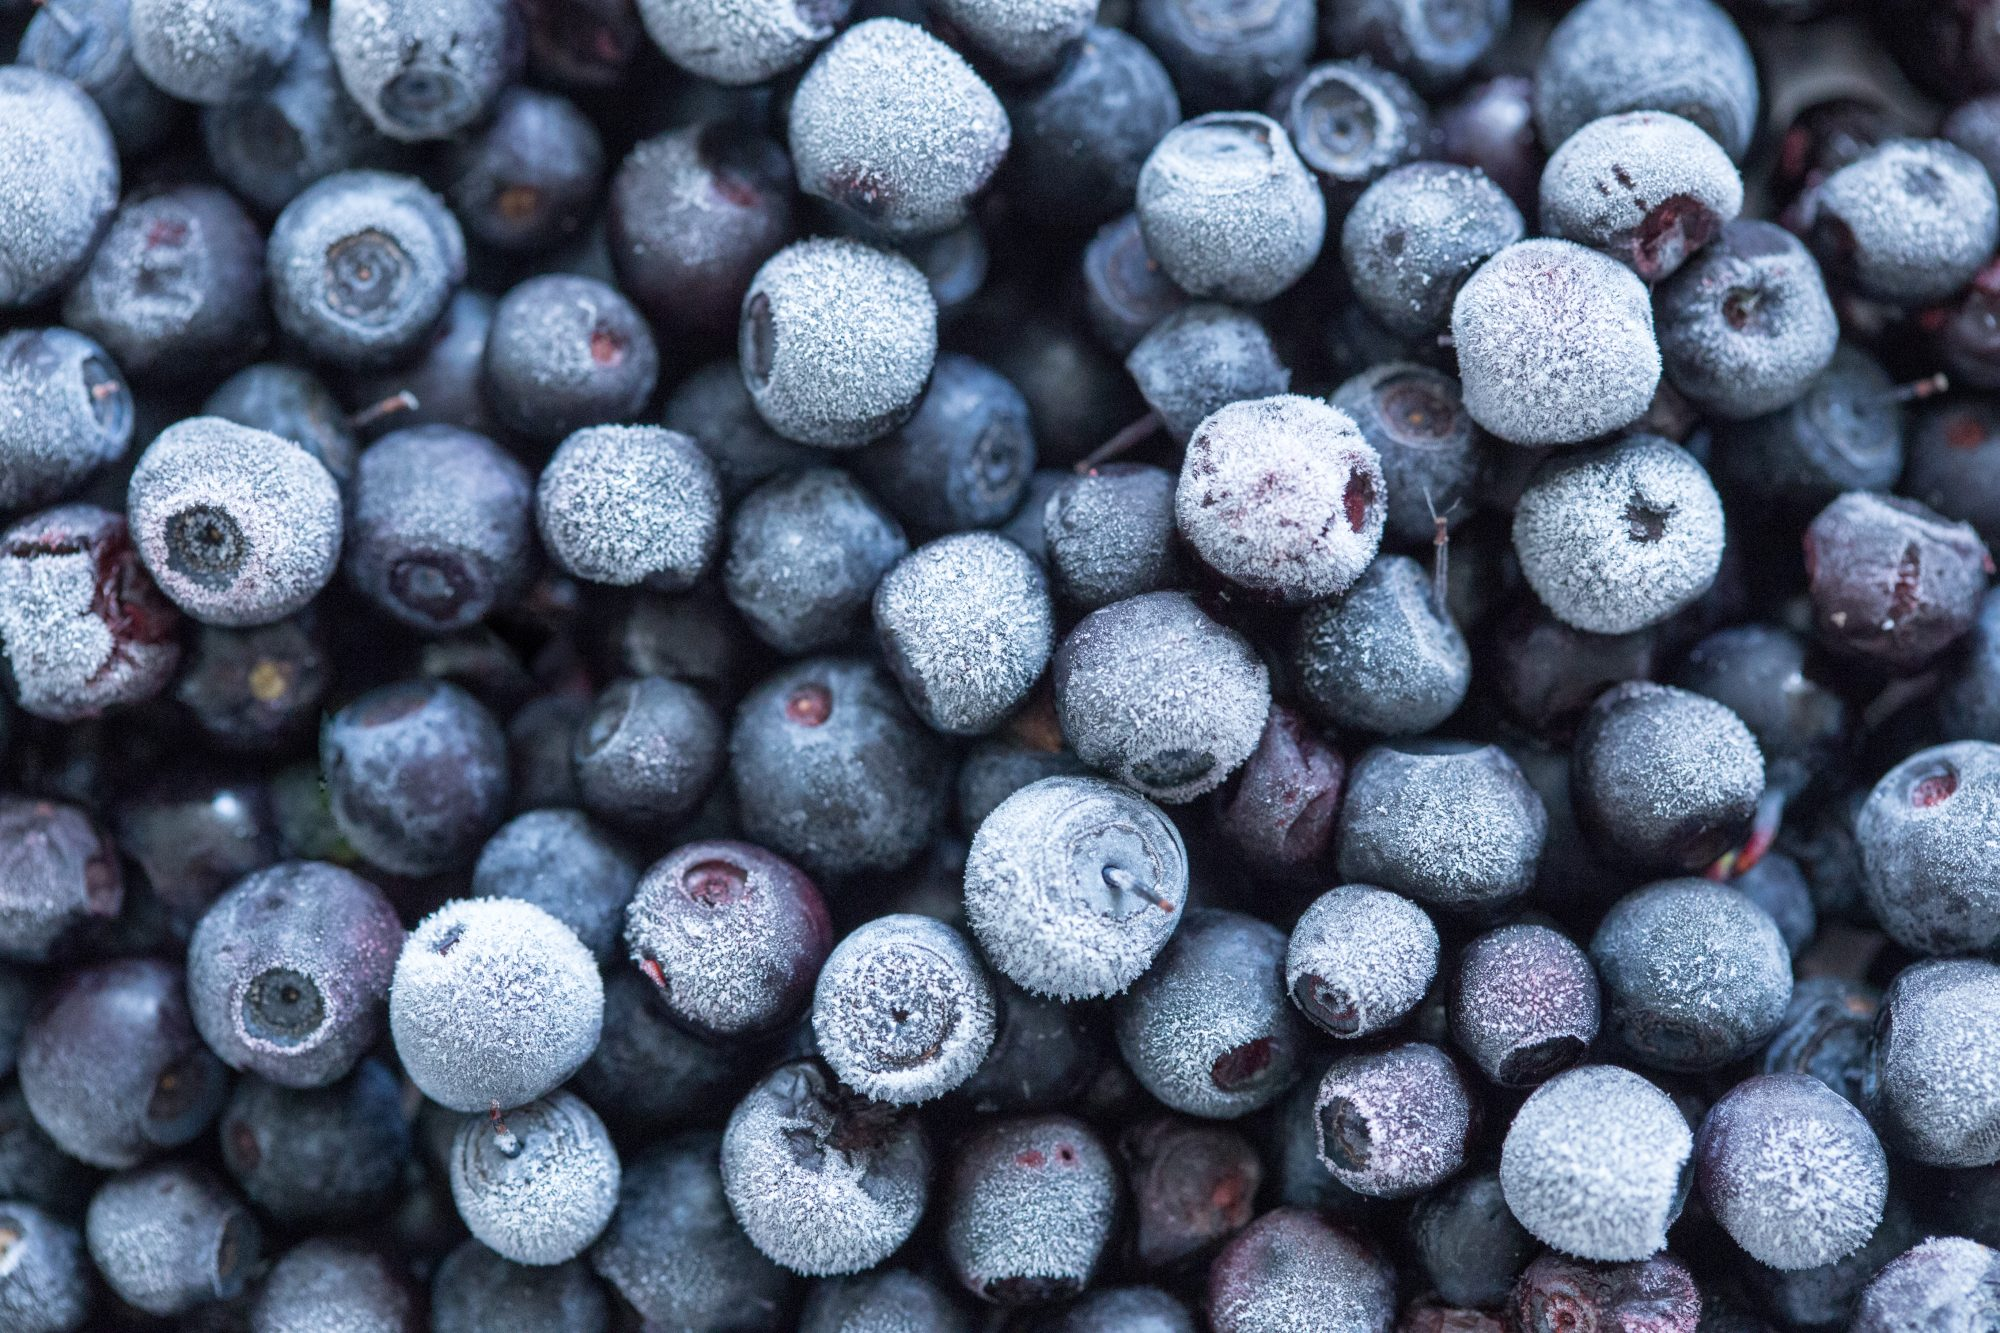 Frozen blueberries Getty 7/16/20